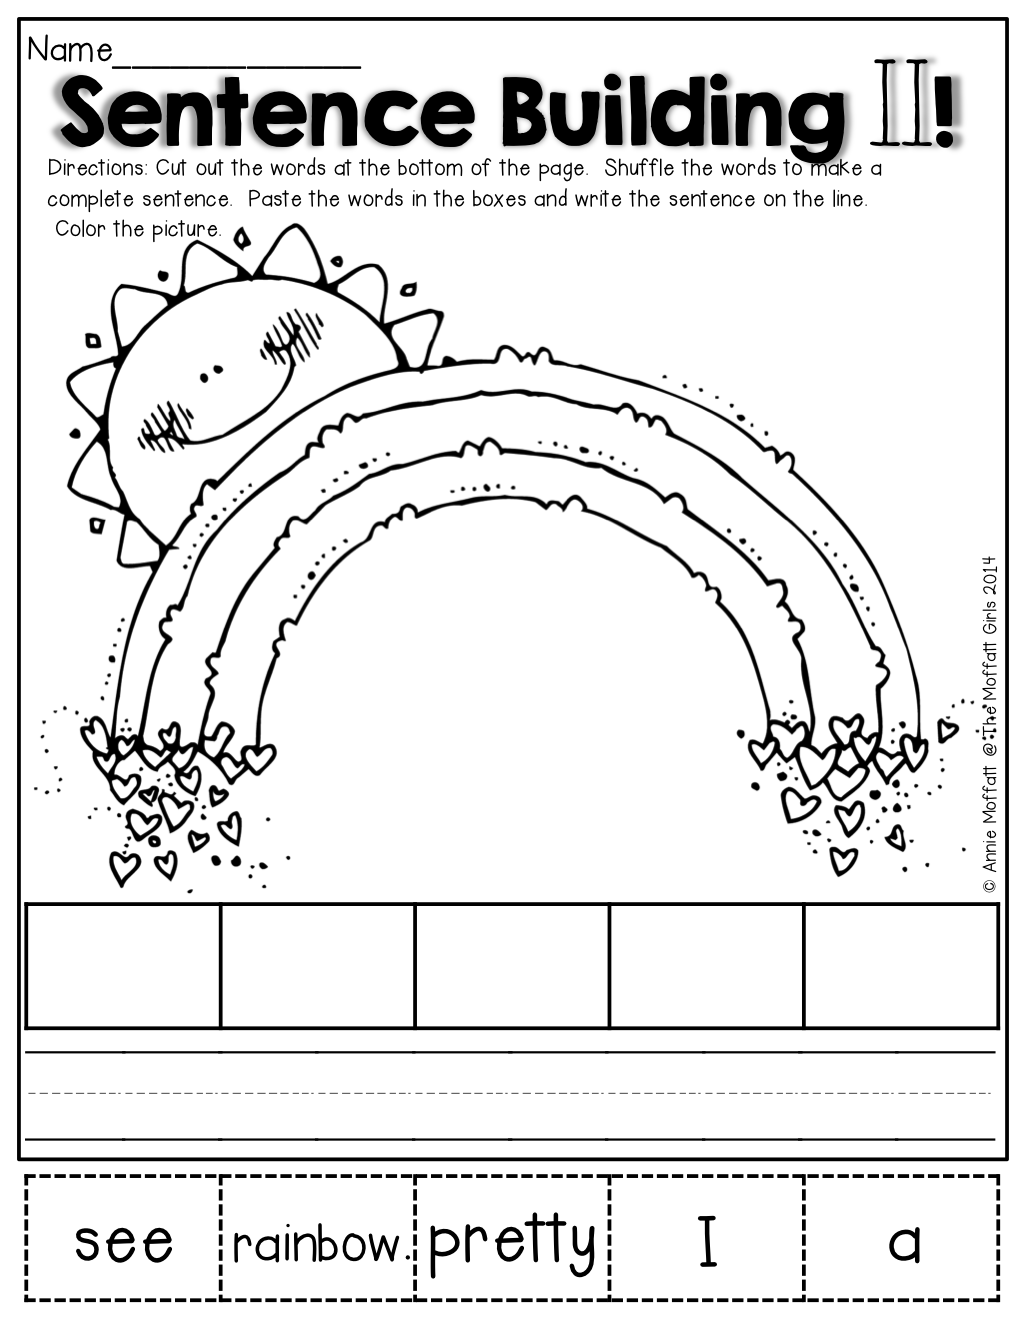 worksheet Sentence Building Worksheets sentence building repinned by sos inc resources pinterest com building